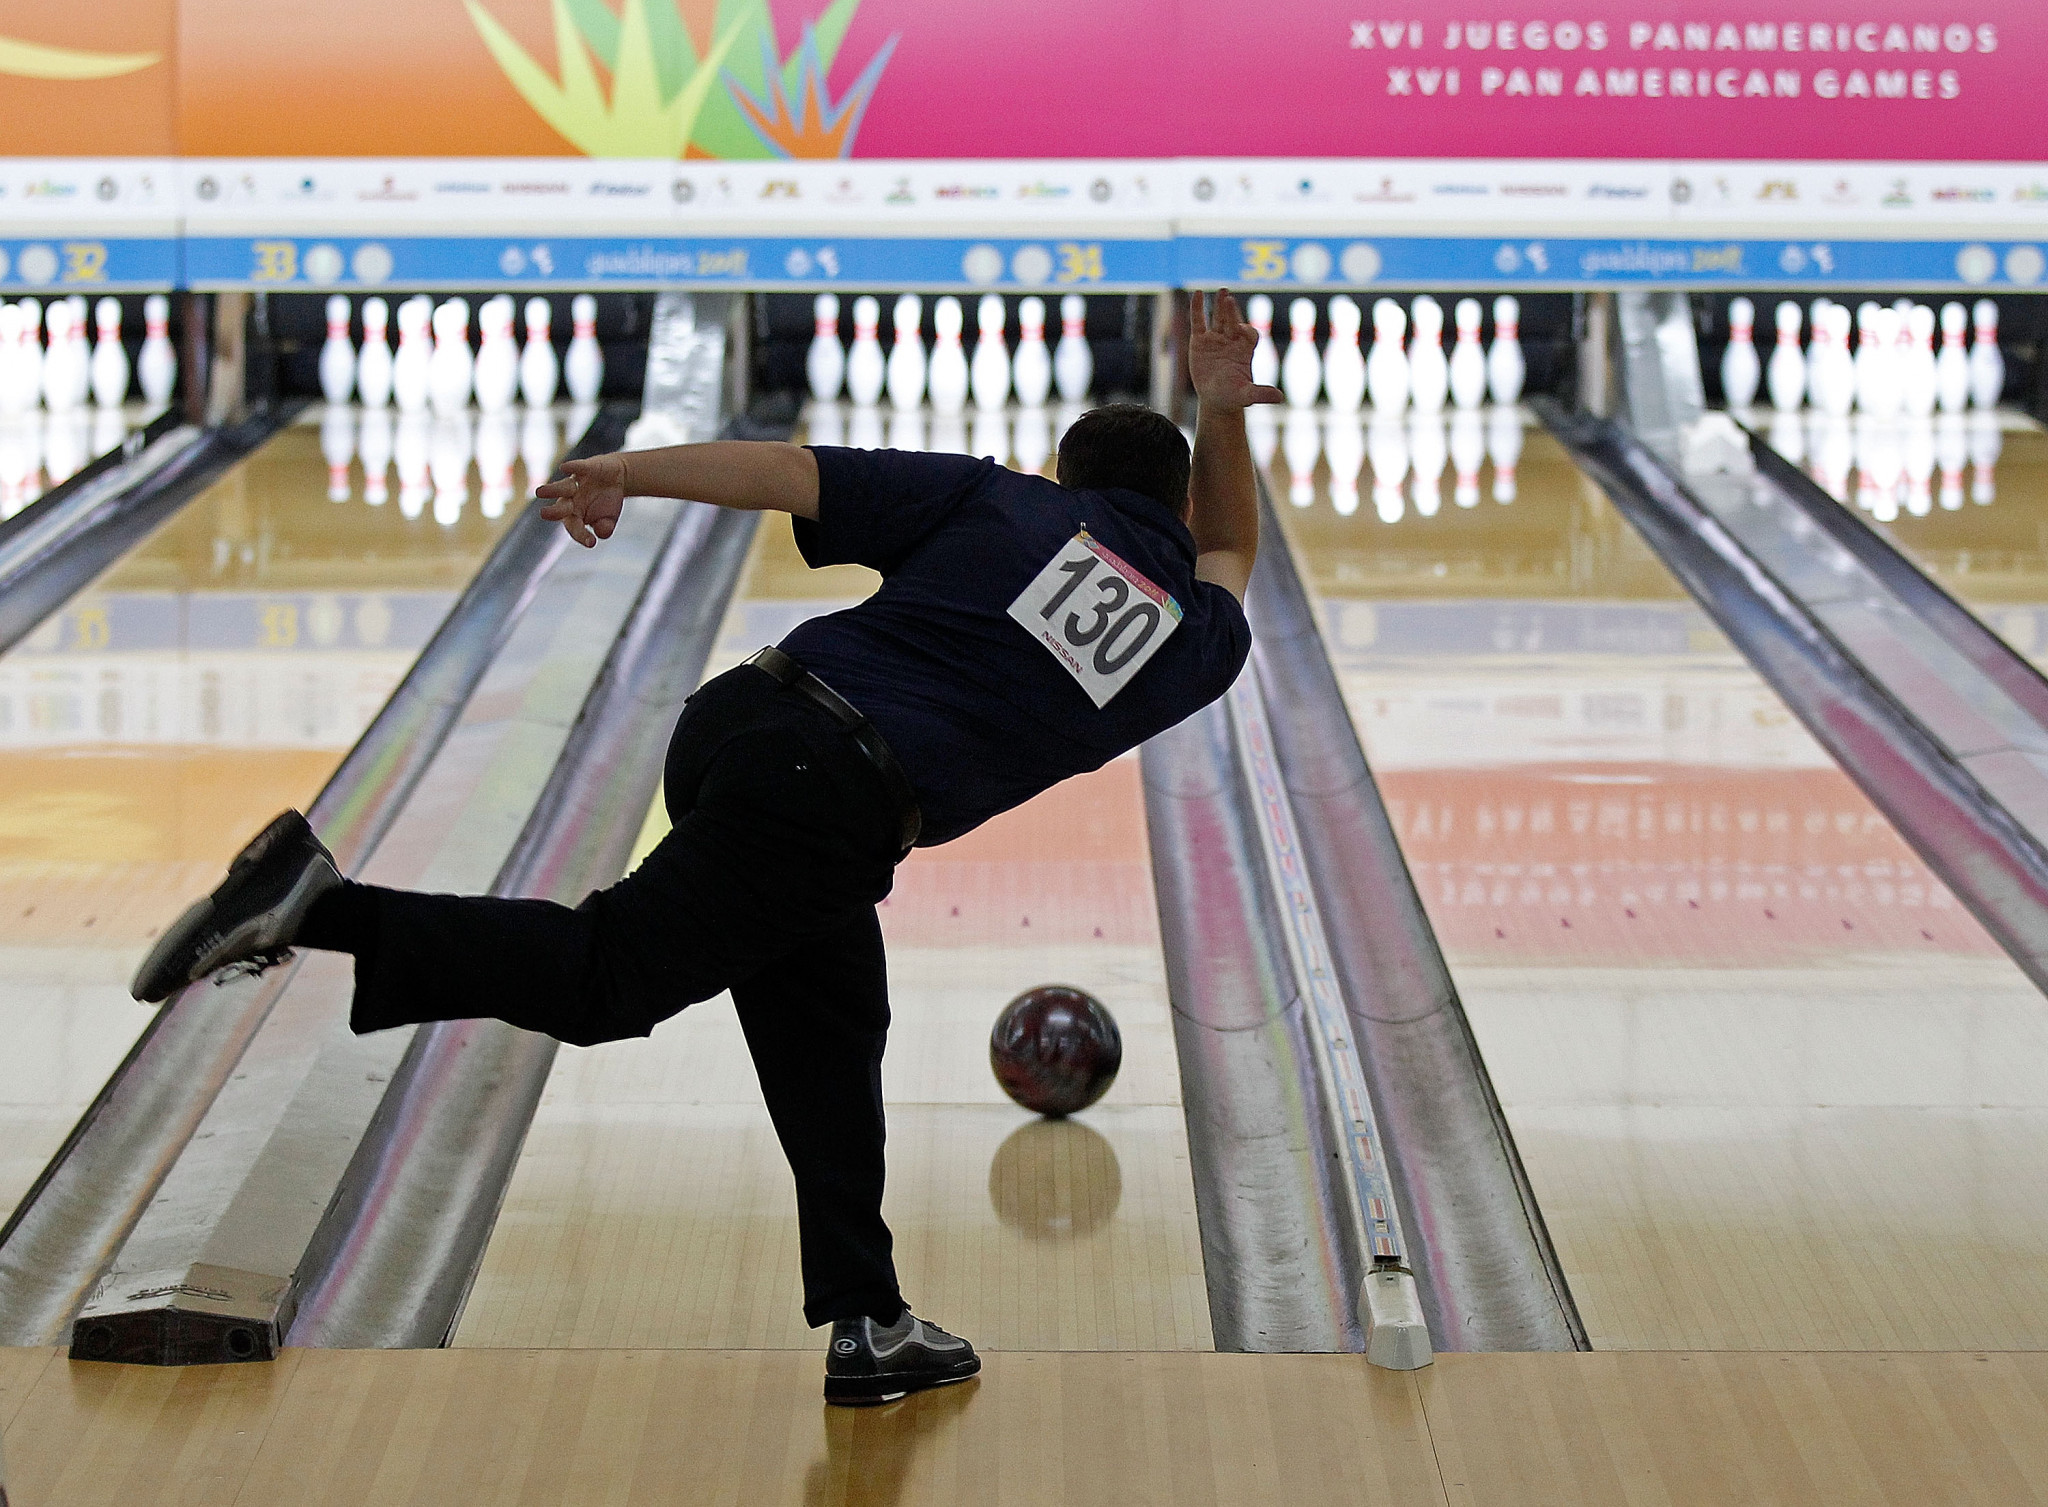 Bowling has featured on the Pan American Games sports programme since 1991 ©Getty Images